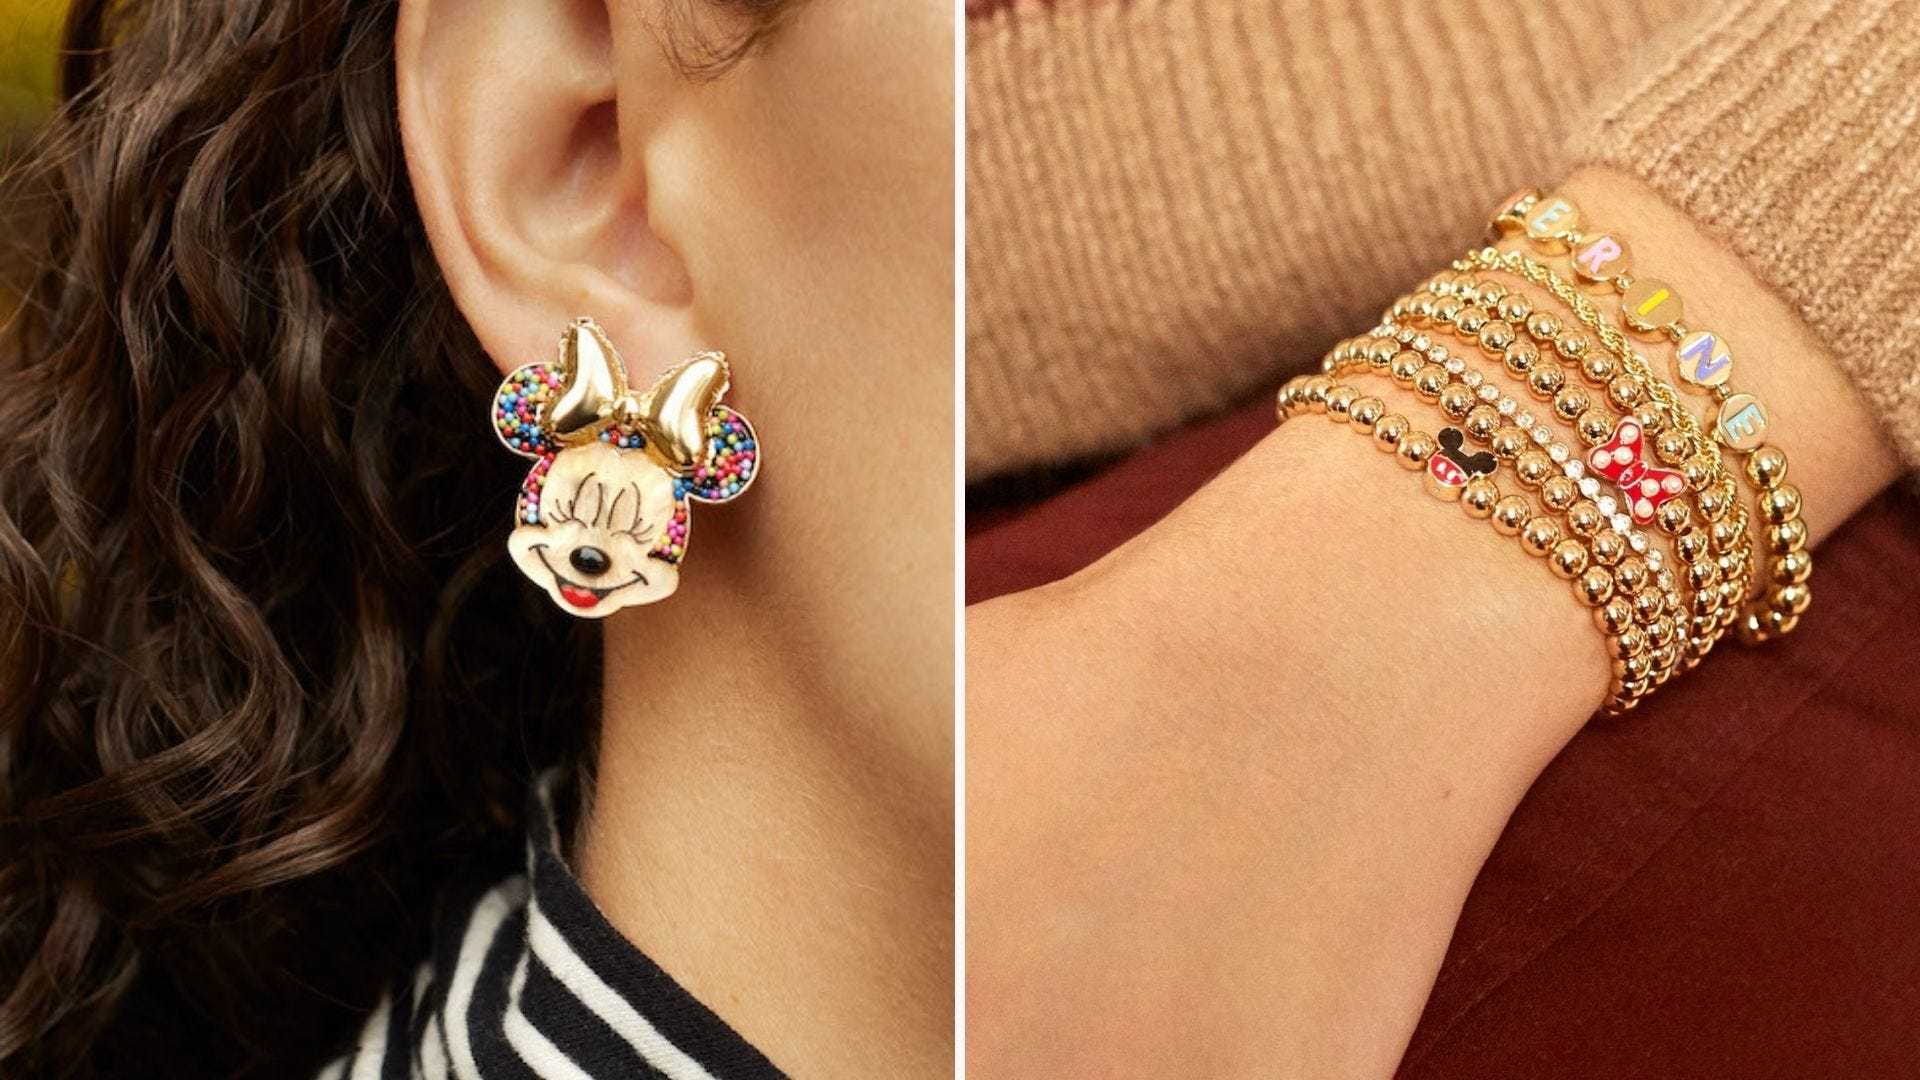 A woman wearing a Minnie Mouse earring; a wrist with stacked Disney bracelets